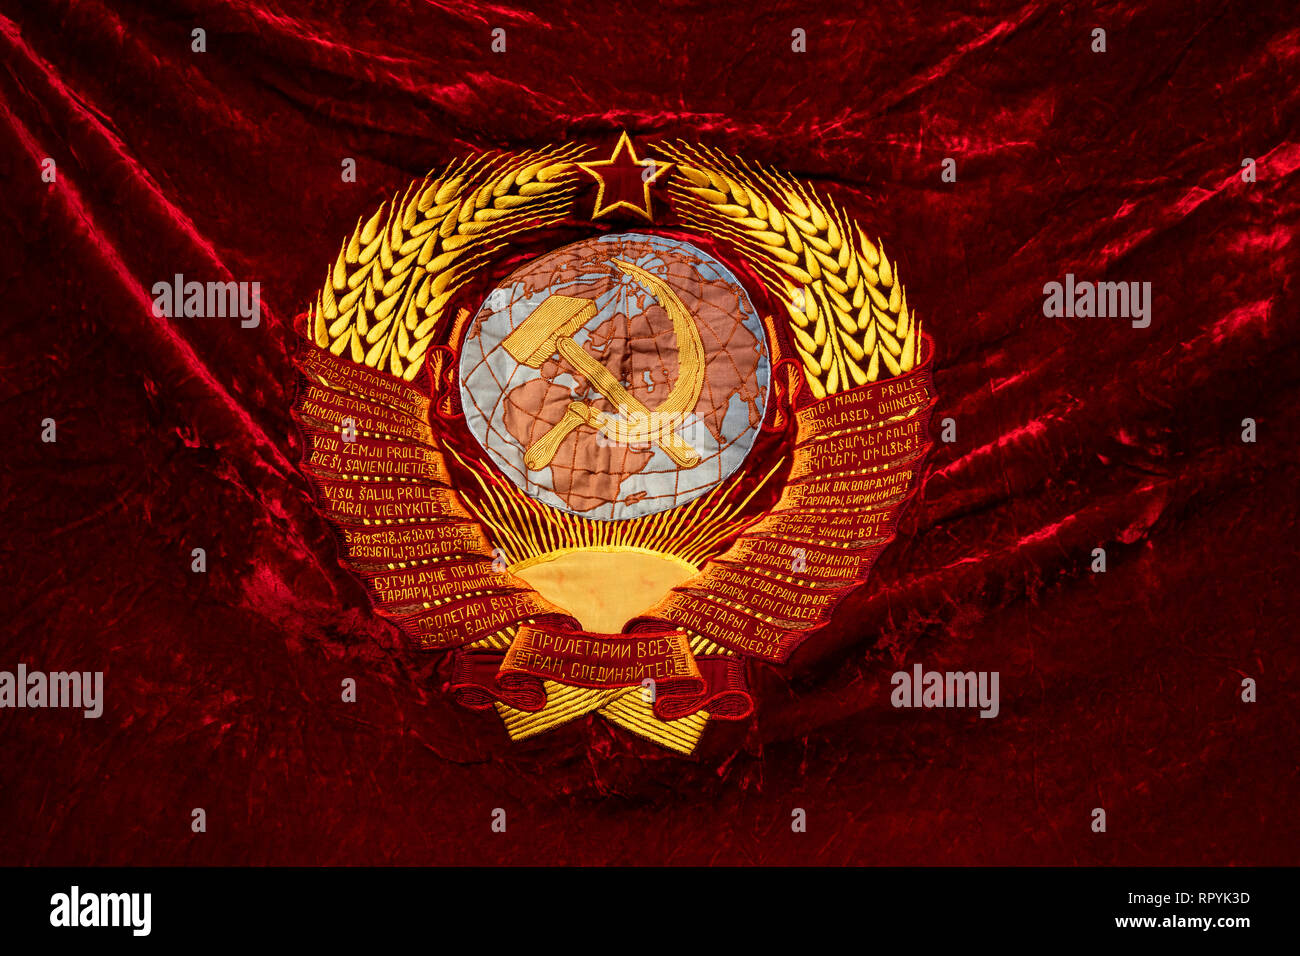 Moscow, Russia. 23 February, 2019: A banner with the emblem of the USSR in a march of the Russian Communist Party in central Moscow to mark the 101st anniversary of establishment of the Red Army and the Navy on Defender of the Fatherland Day Credit: Nikolay Vinokurov/Alamy Live News - Stock Image